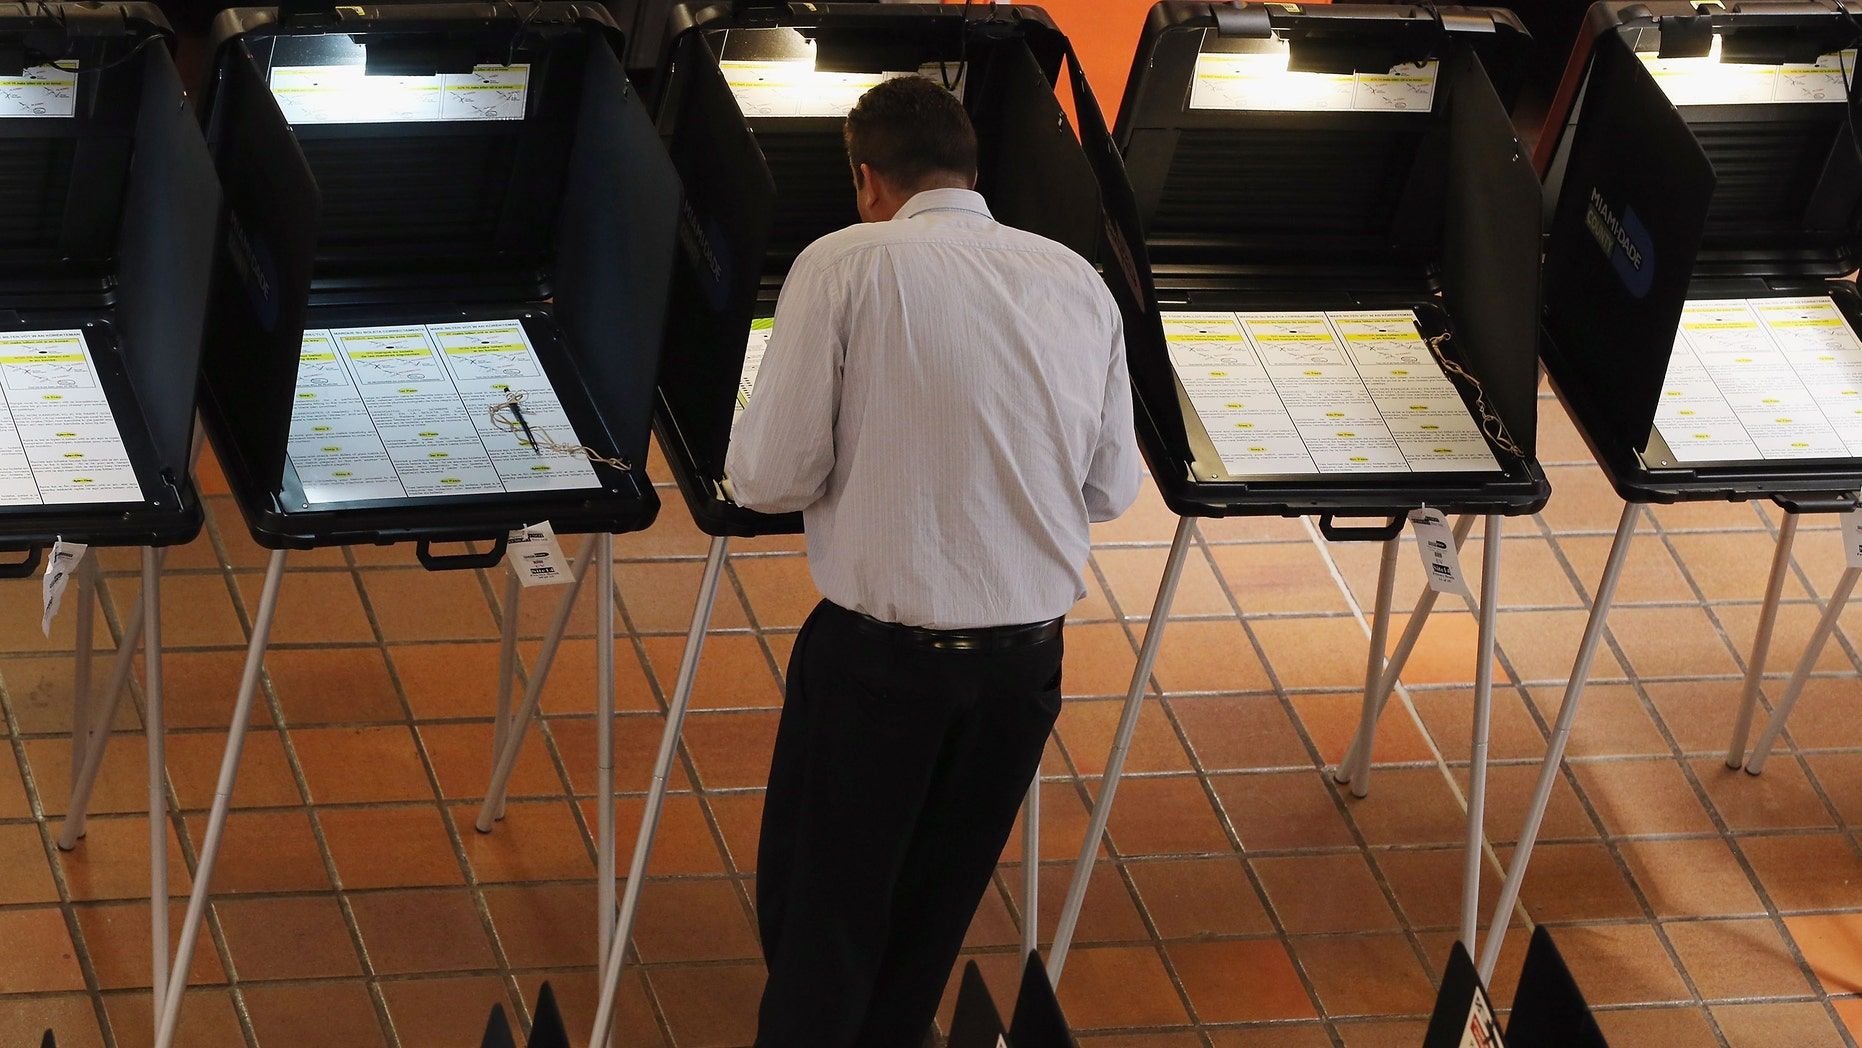 MIAMI, FL - APRIL 29:  A voter fills out a ballot during the early voting period on a ballot issue to decide if the Miami Dolphins and their owner Stephen Ross will be able to tap into $289 million in public funding that the team is seeking to help renovate their stadium on April 29, 2013 in Miami, Florida. Early voting started without a clear understanding if it will even be counted because the stadium renovation plan is dependent on the Florida legislature voting to increase the Miami-Dade mainland hotel tax rate from 6 to 7 percent and they have not yet decided to  vote on that issue themselves.  (Photo by Joe Raedle/Getty Images)